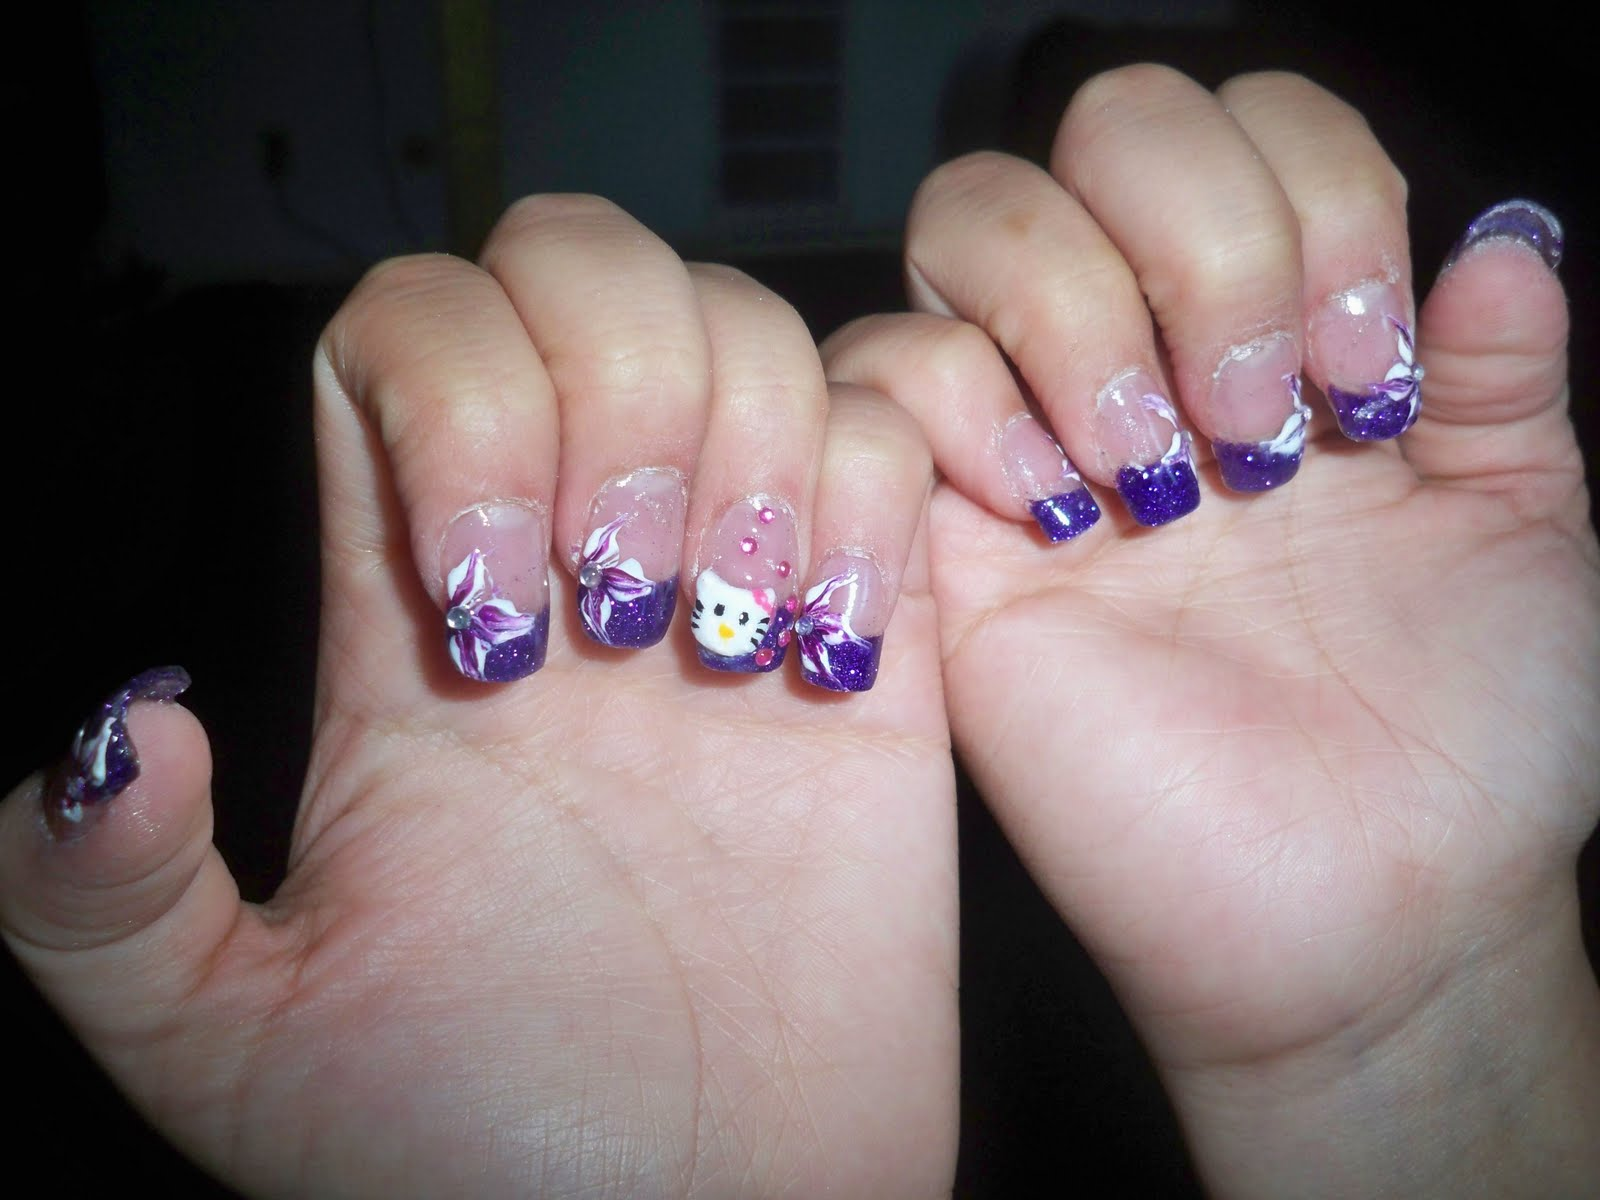 Magnificent Acrylic Nails With Purple Motif - Nail Art Ideas ...